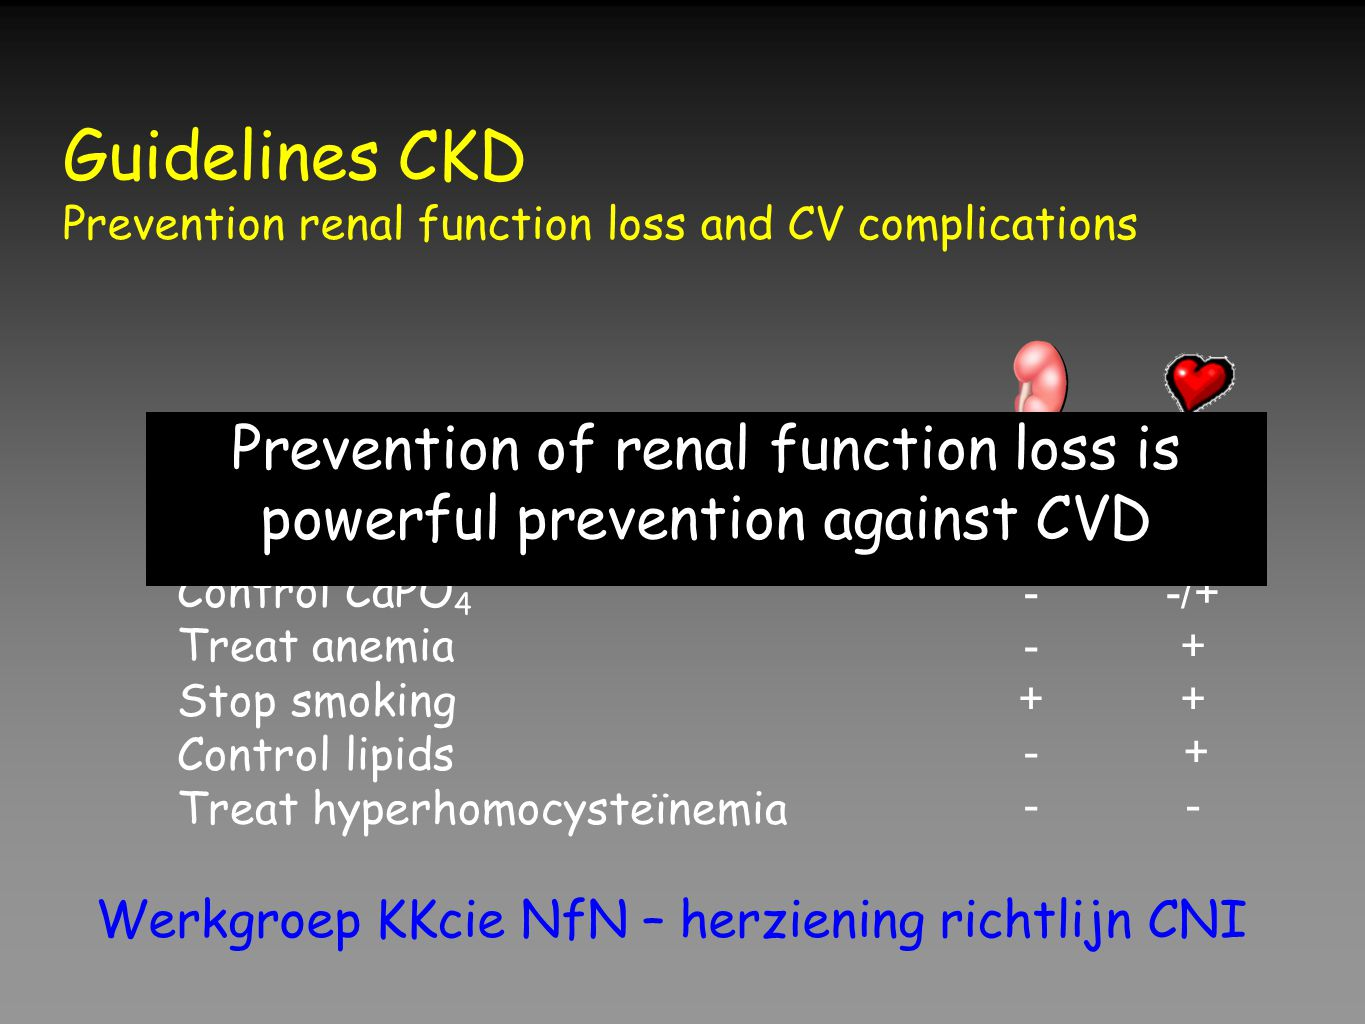 Guidelines CKD Prevention renal function loss and CV complications. Prevention of renal function loss is powerful prevention against CVD.